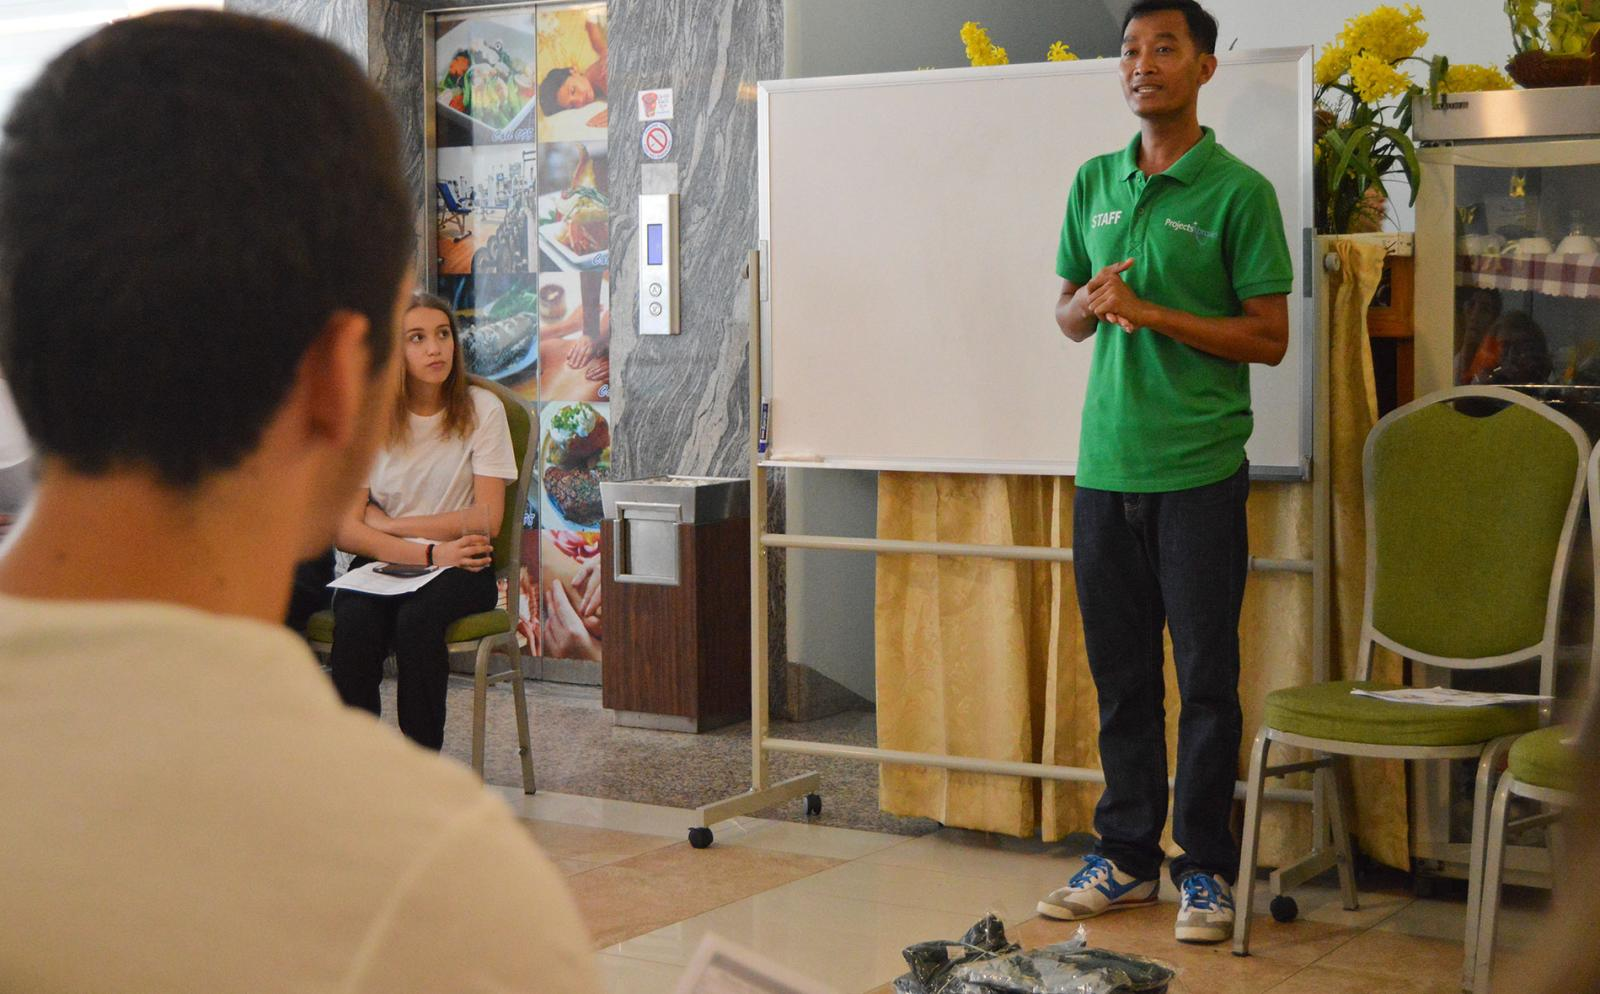 Projects Abroad Volunteers being introduced to local culture and language after their arrival in Cambodia.